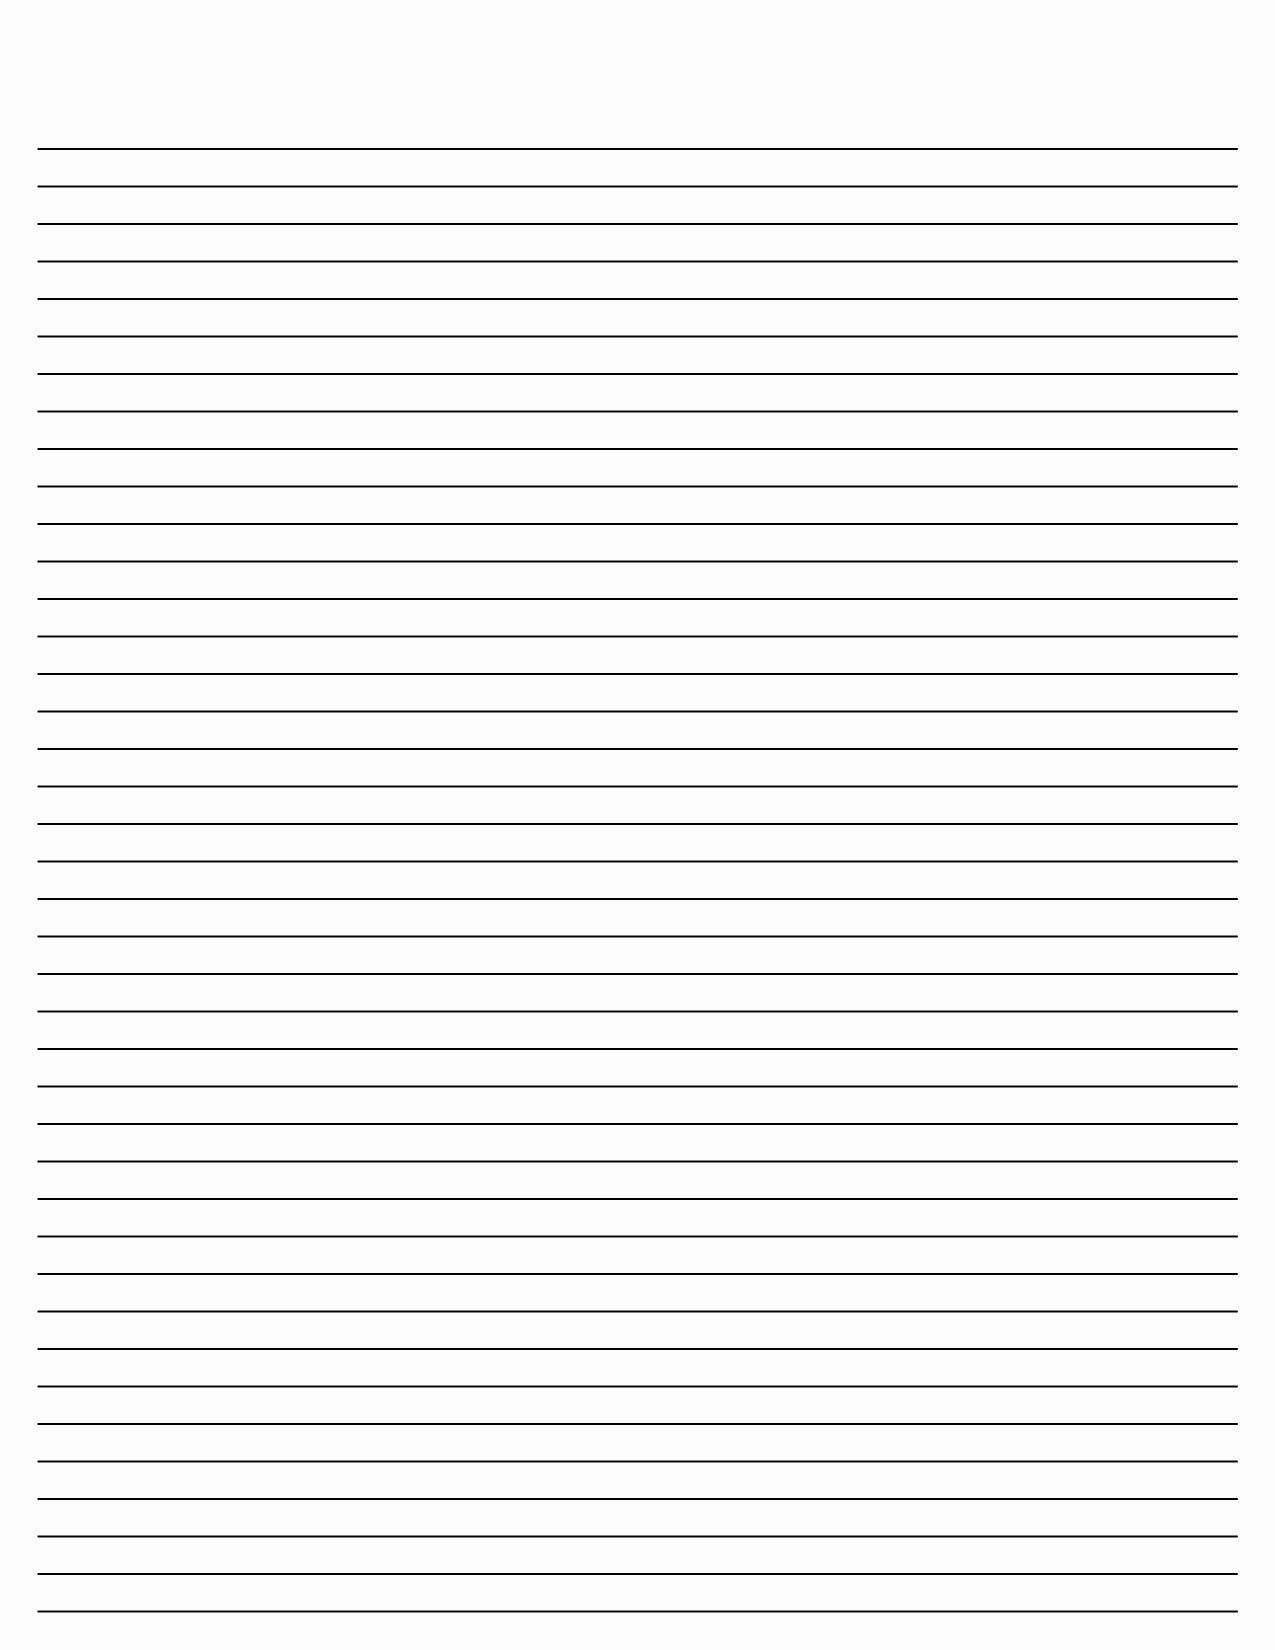 Lined Paper Template Pdf Elegant Blank Lined Paper Template